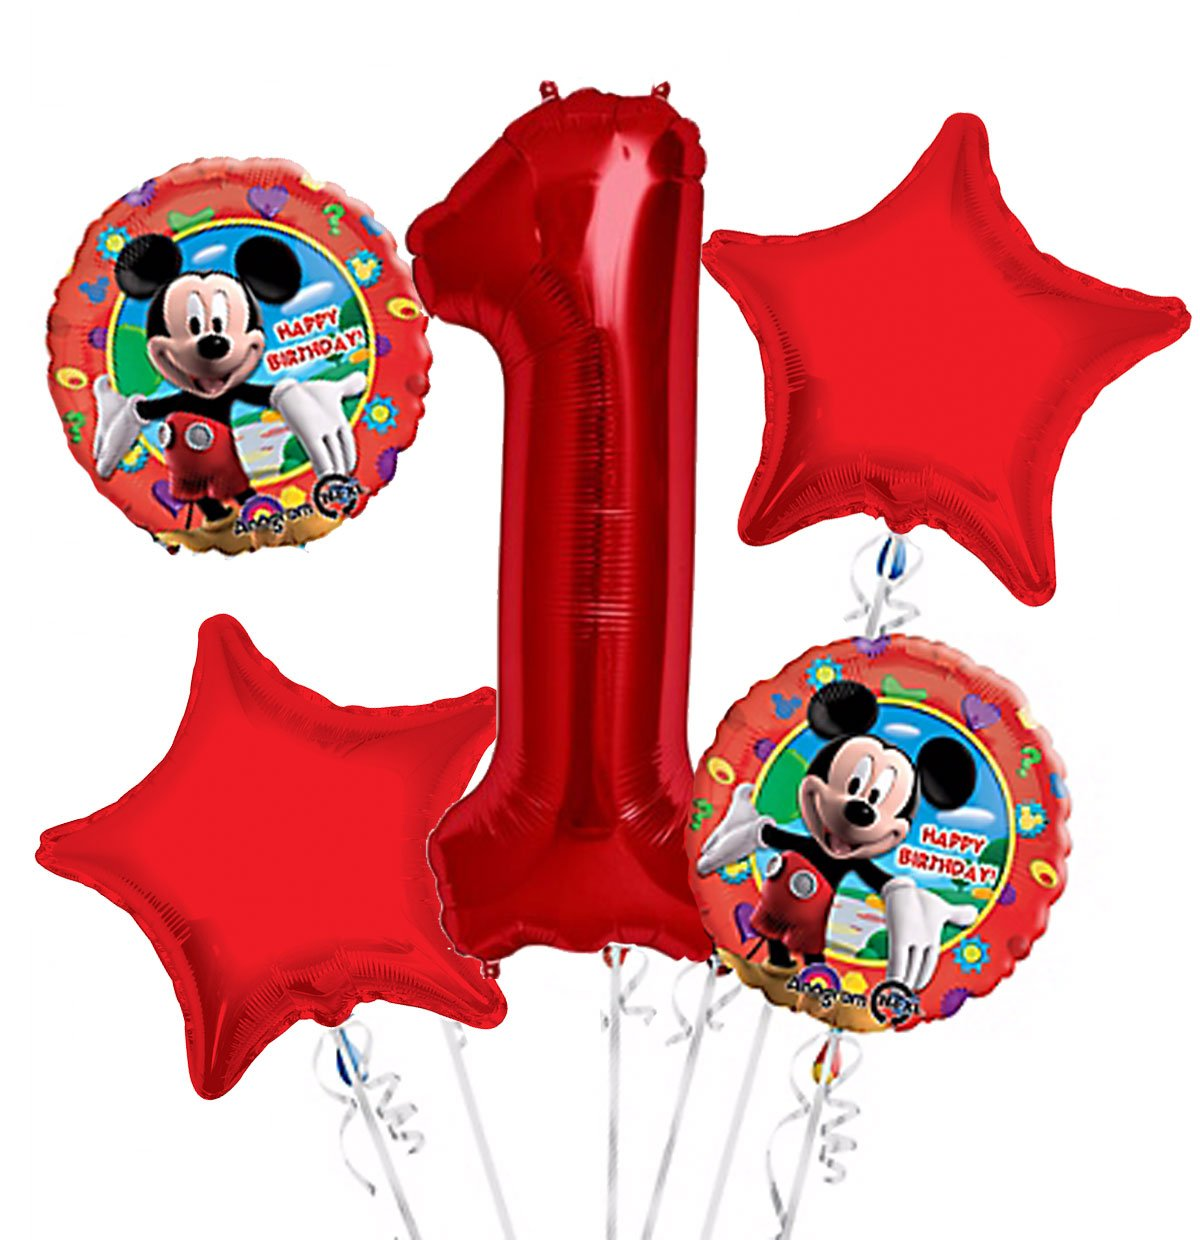 Mickey Mouse Balloon Bouquet 1st Birthday 5 pcs - Party Supplies, 1 Giant Number 1 Balloon, 34in By Viva Party